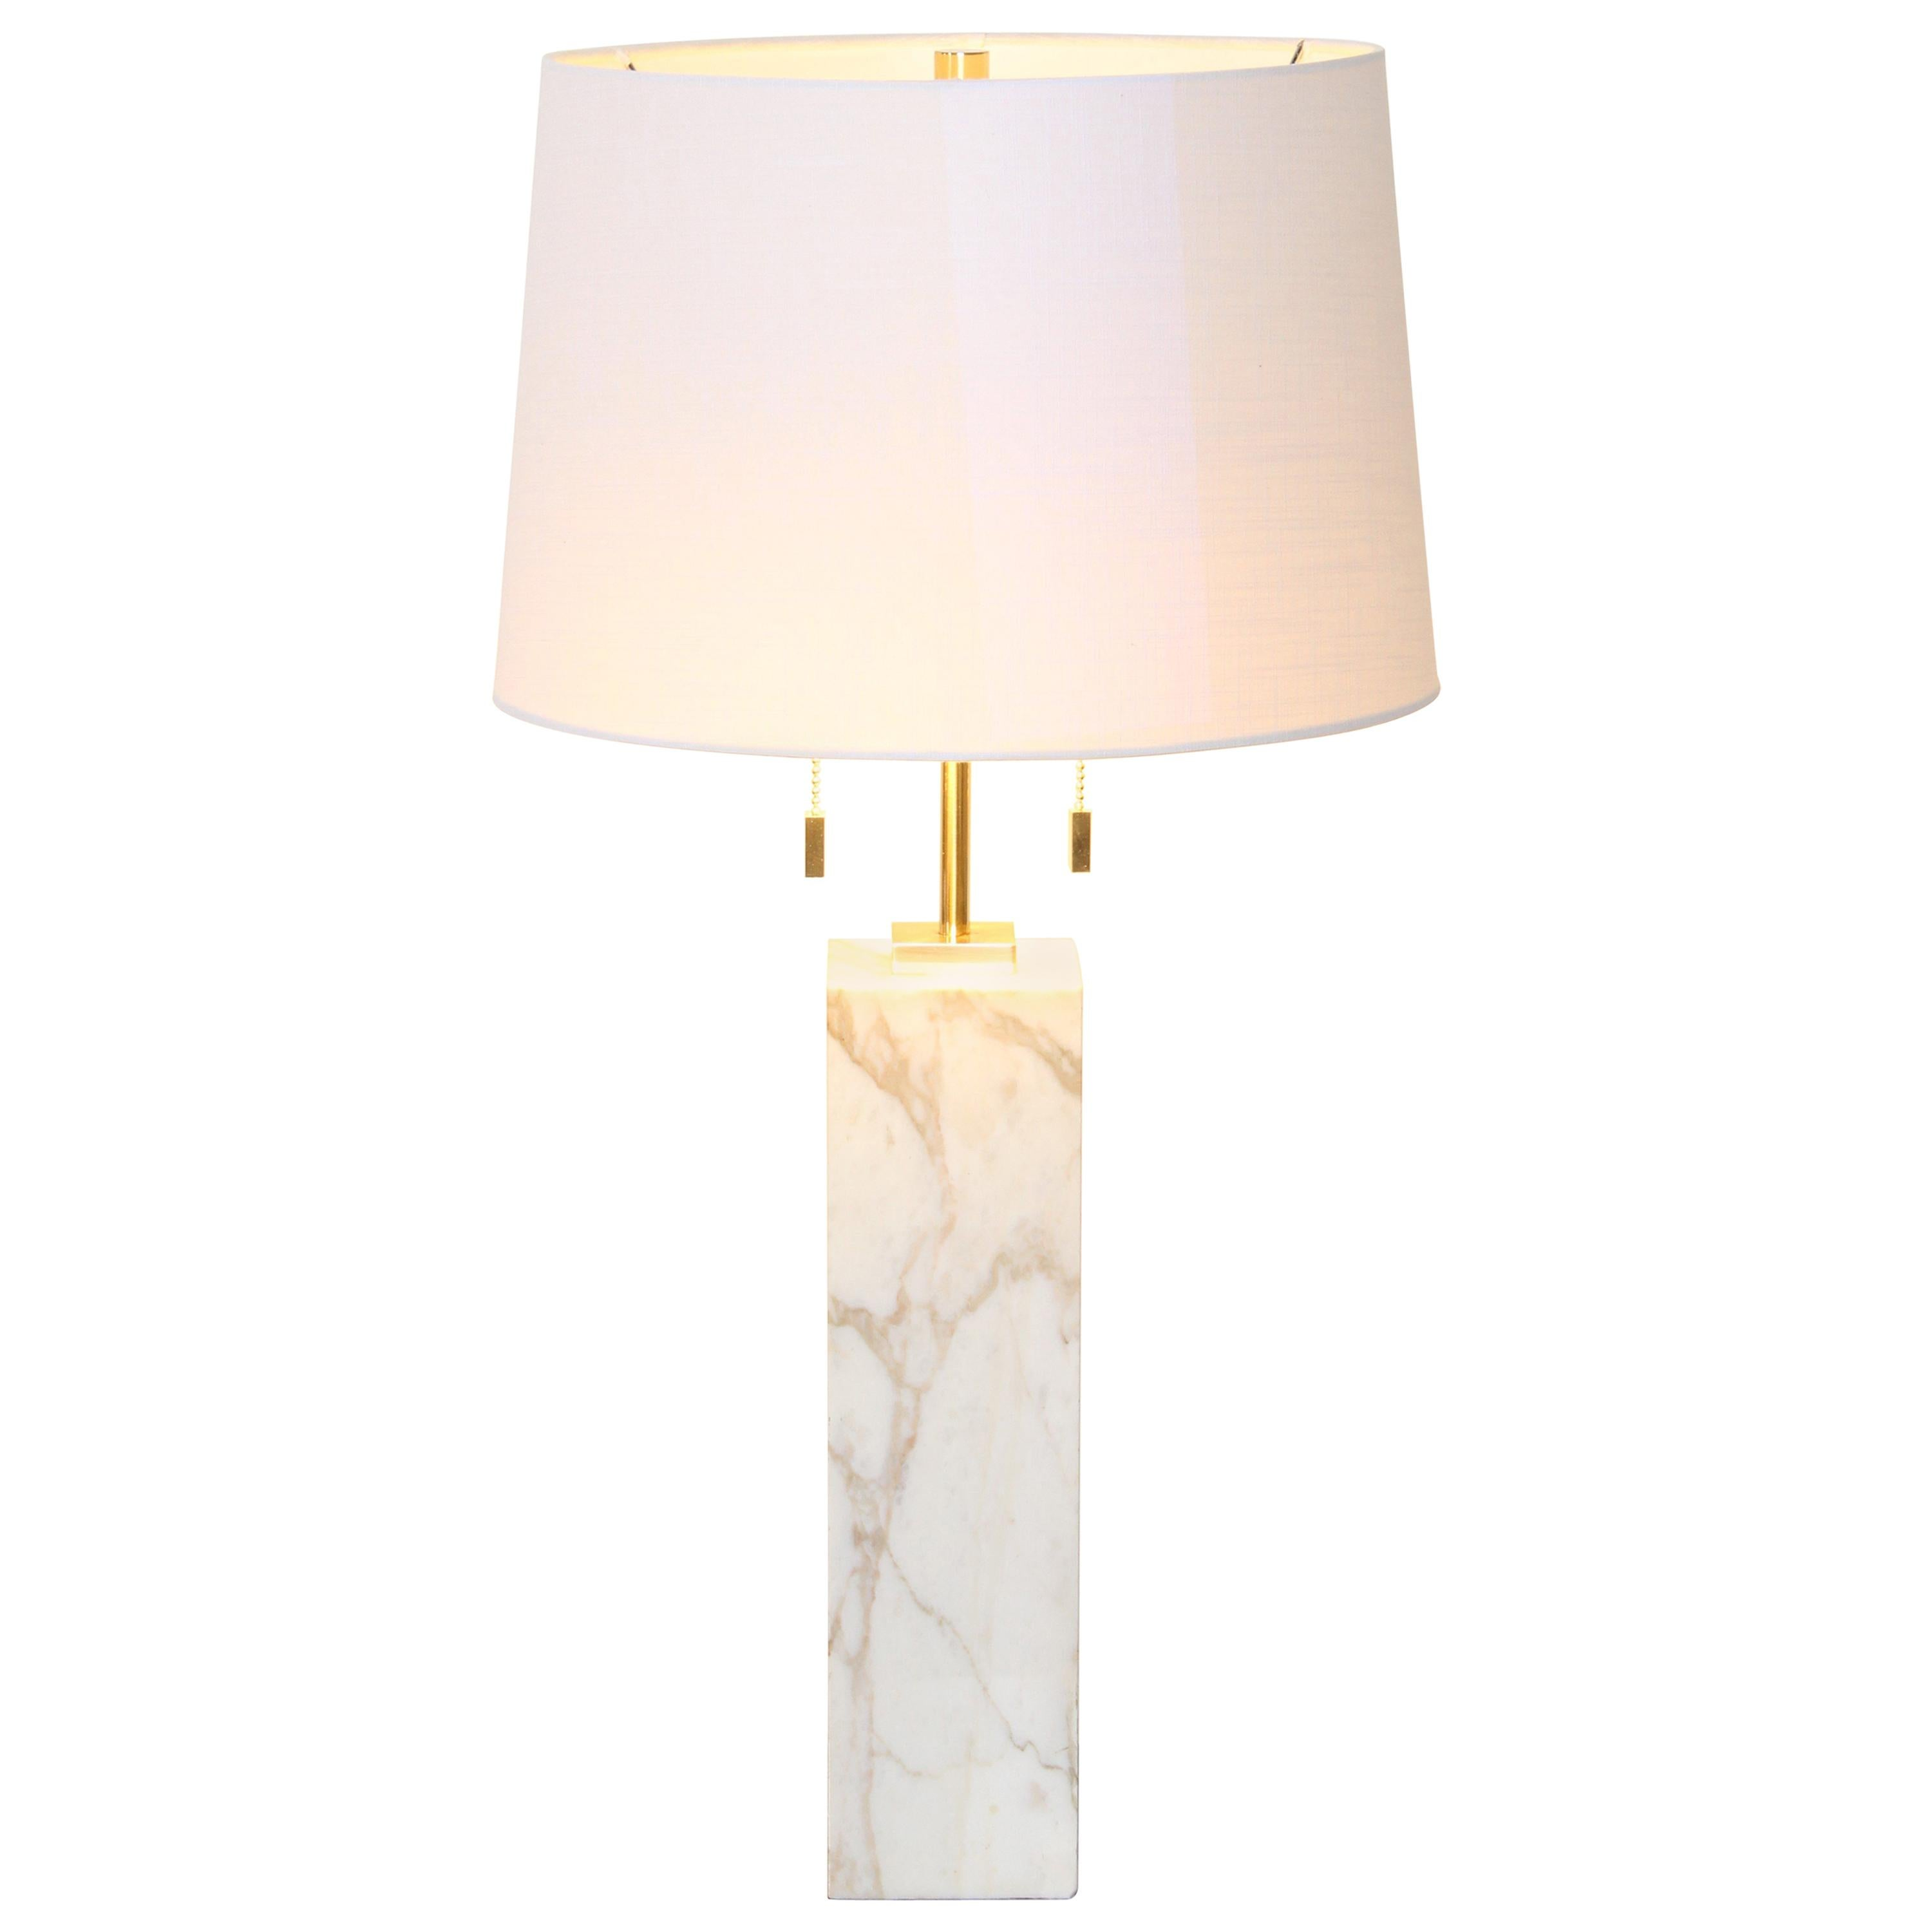 Robsjohn Gibbings Marble Table Lamp by Hansen Lighting, 1950s